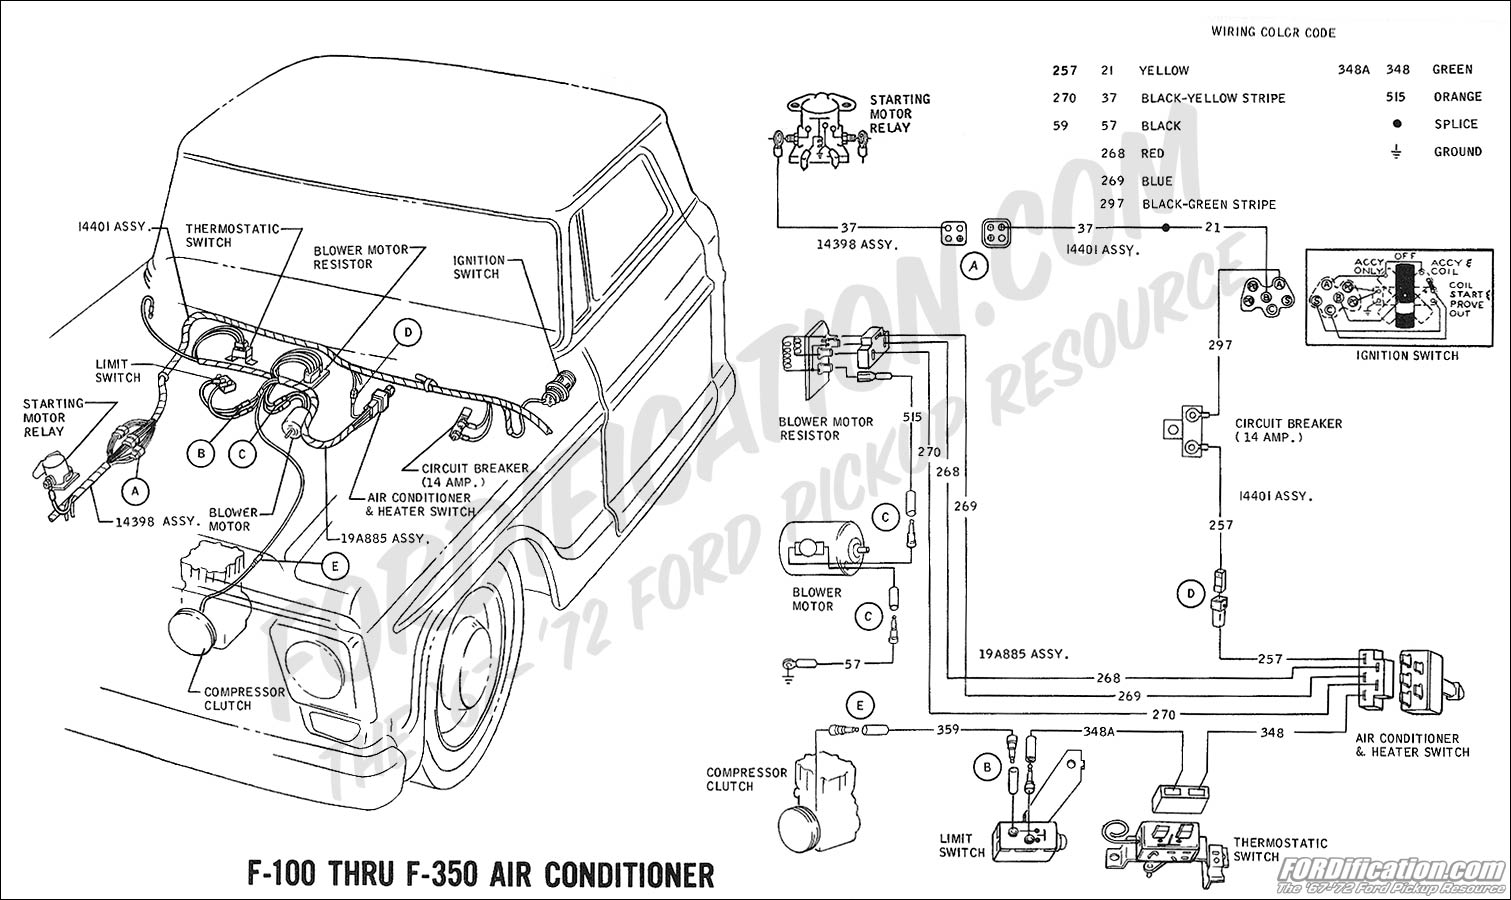 2001 Ford Ranger Xlt Wiring Diagram Library. Ford F 250 Wiring Diagram Ac Data Schema 2003 Ranger. Ford. 2003 Ford Ranger Extended Cab Parts Diagram At Scoala.co